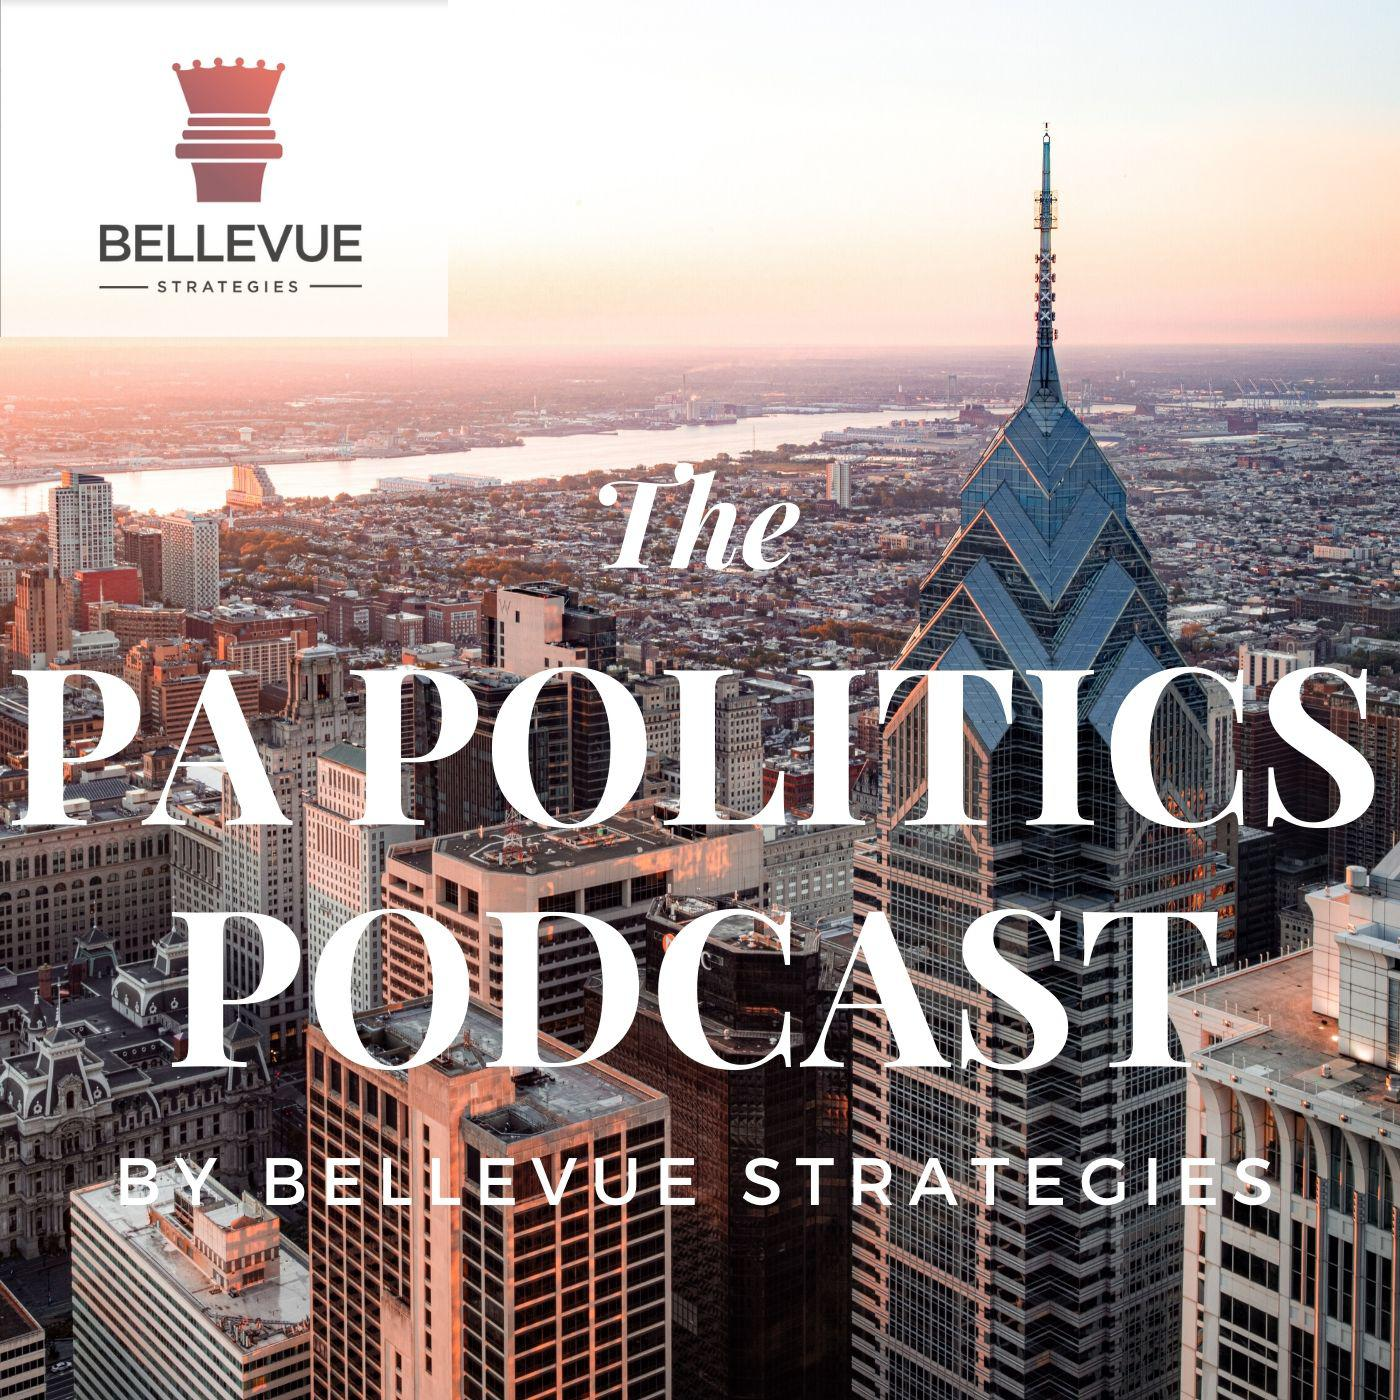 The PA Politics Podcast: Episode 13 - Small Business Resources with Mustafa Rashed